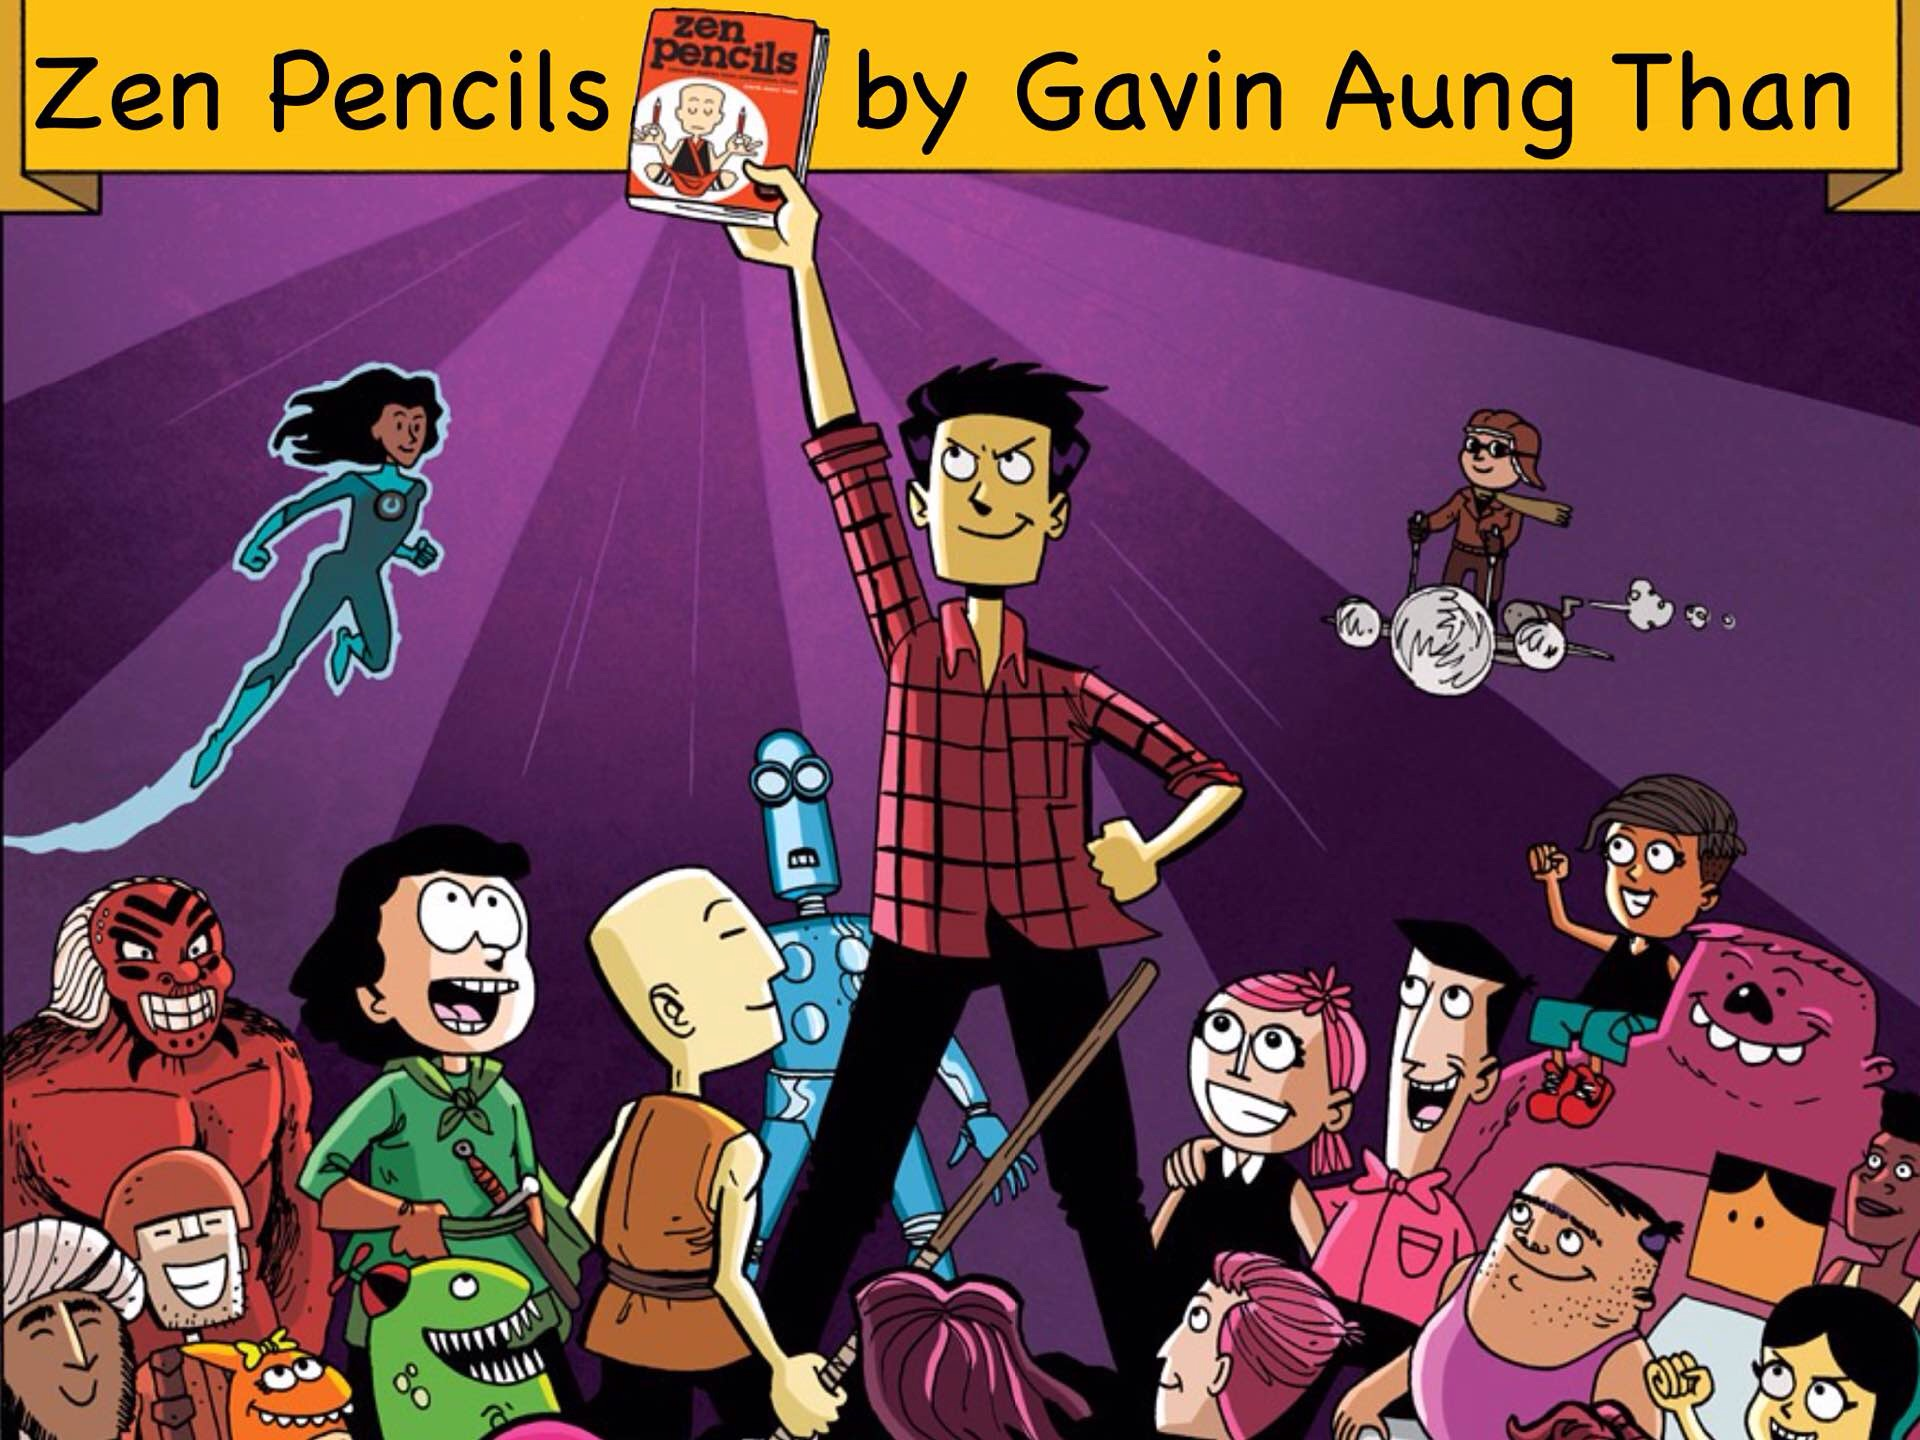 Zen Pencils by Gavin Aung Than.